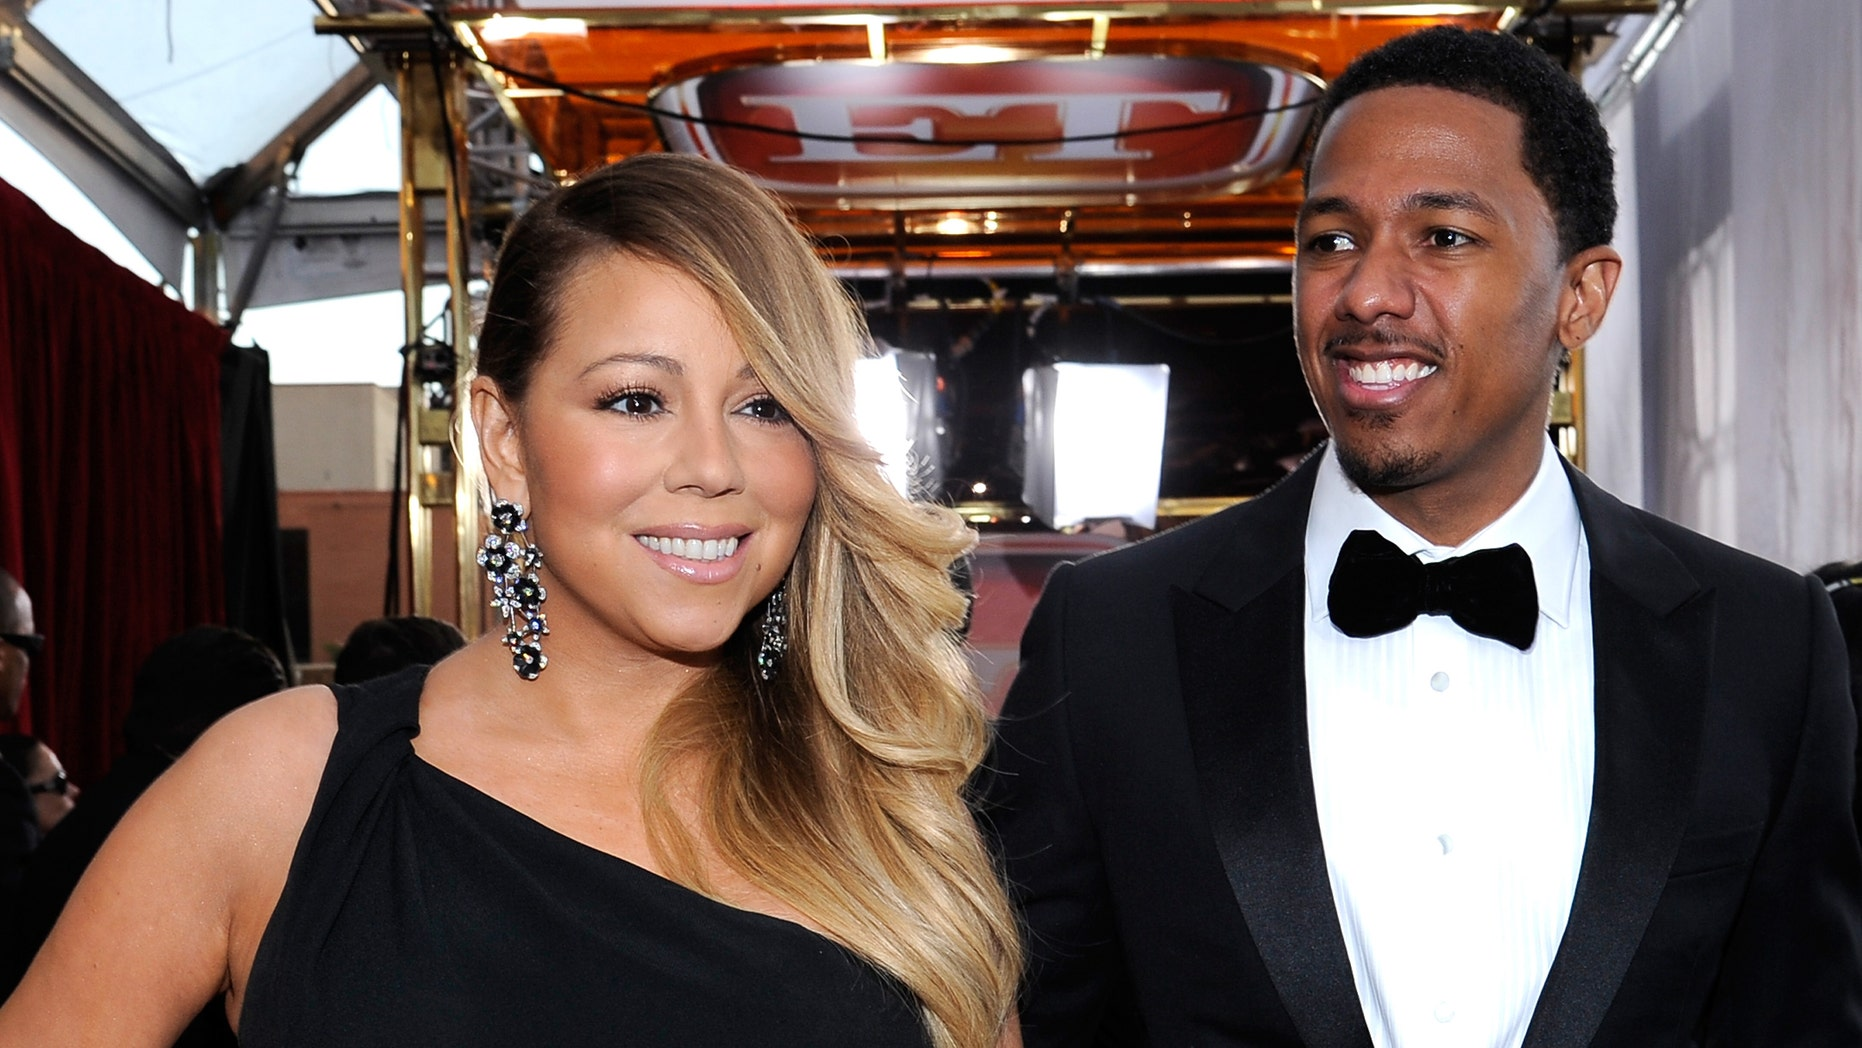 The emancipation of Nick Cannon: Actor covers up famous